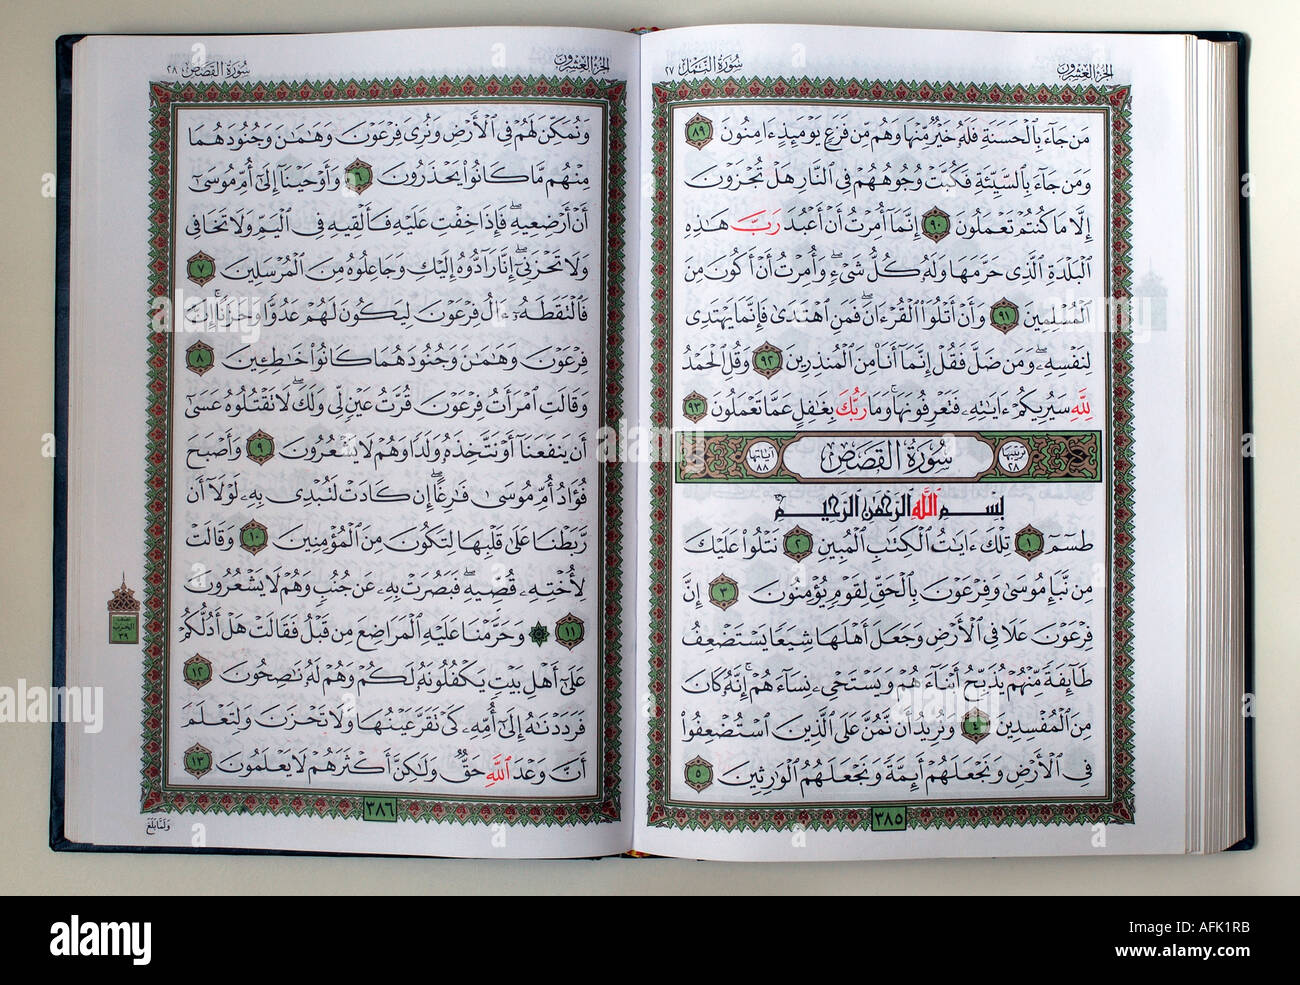 A copy of the sacred text of Islam Qur'an opened for reading - Stock Image